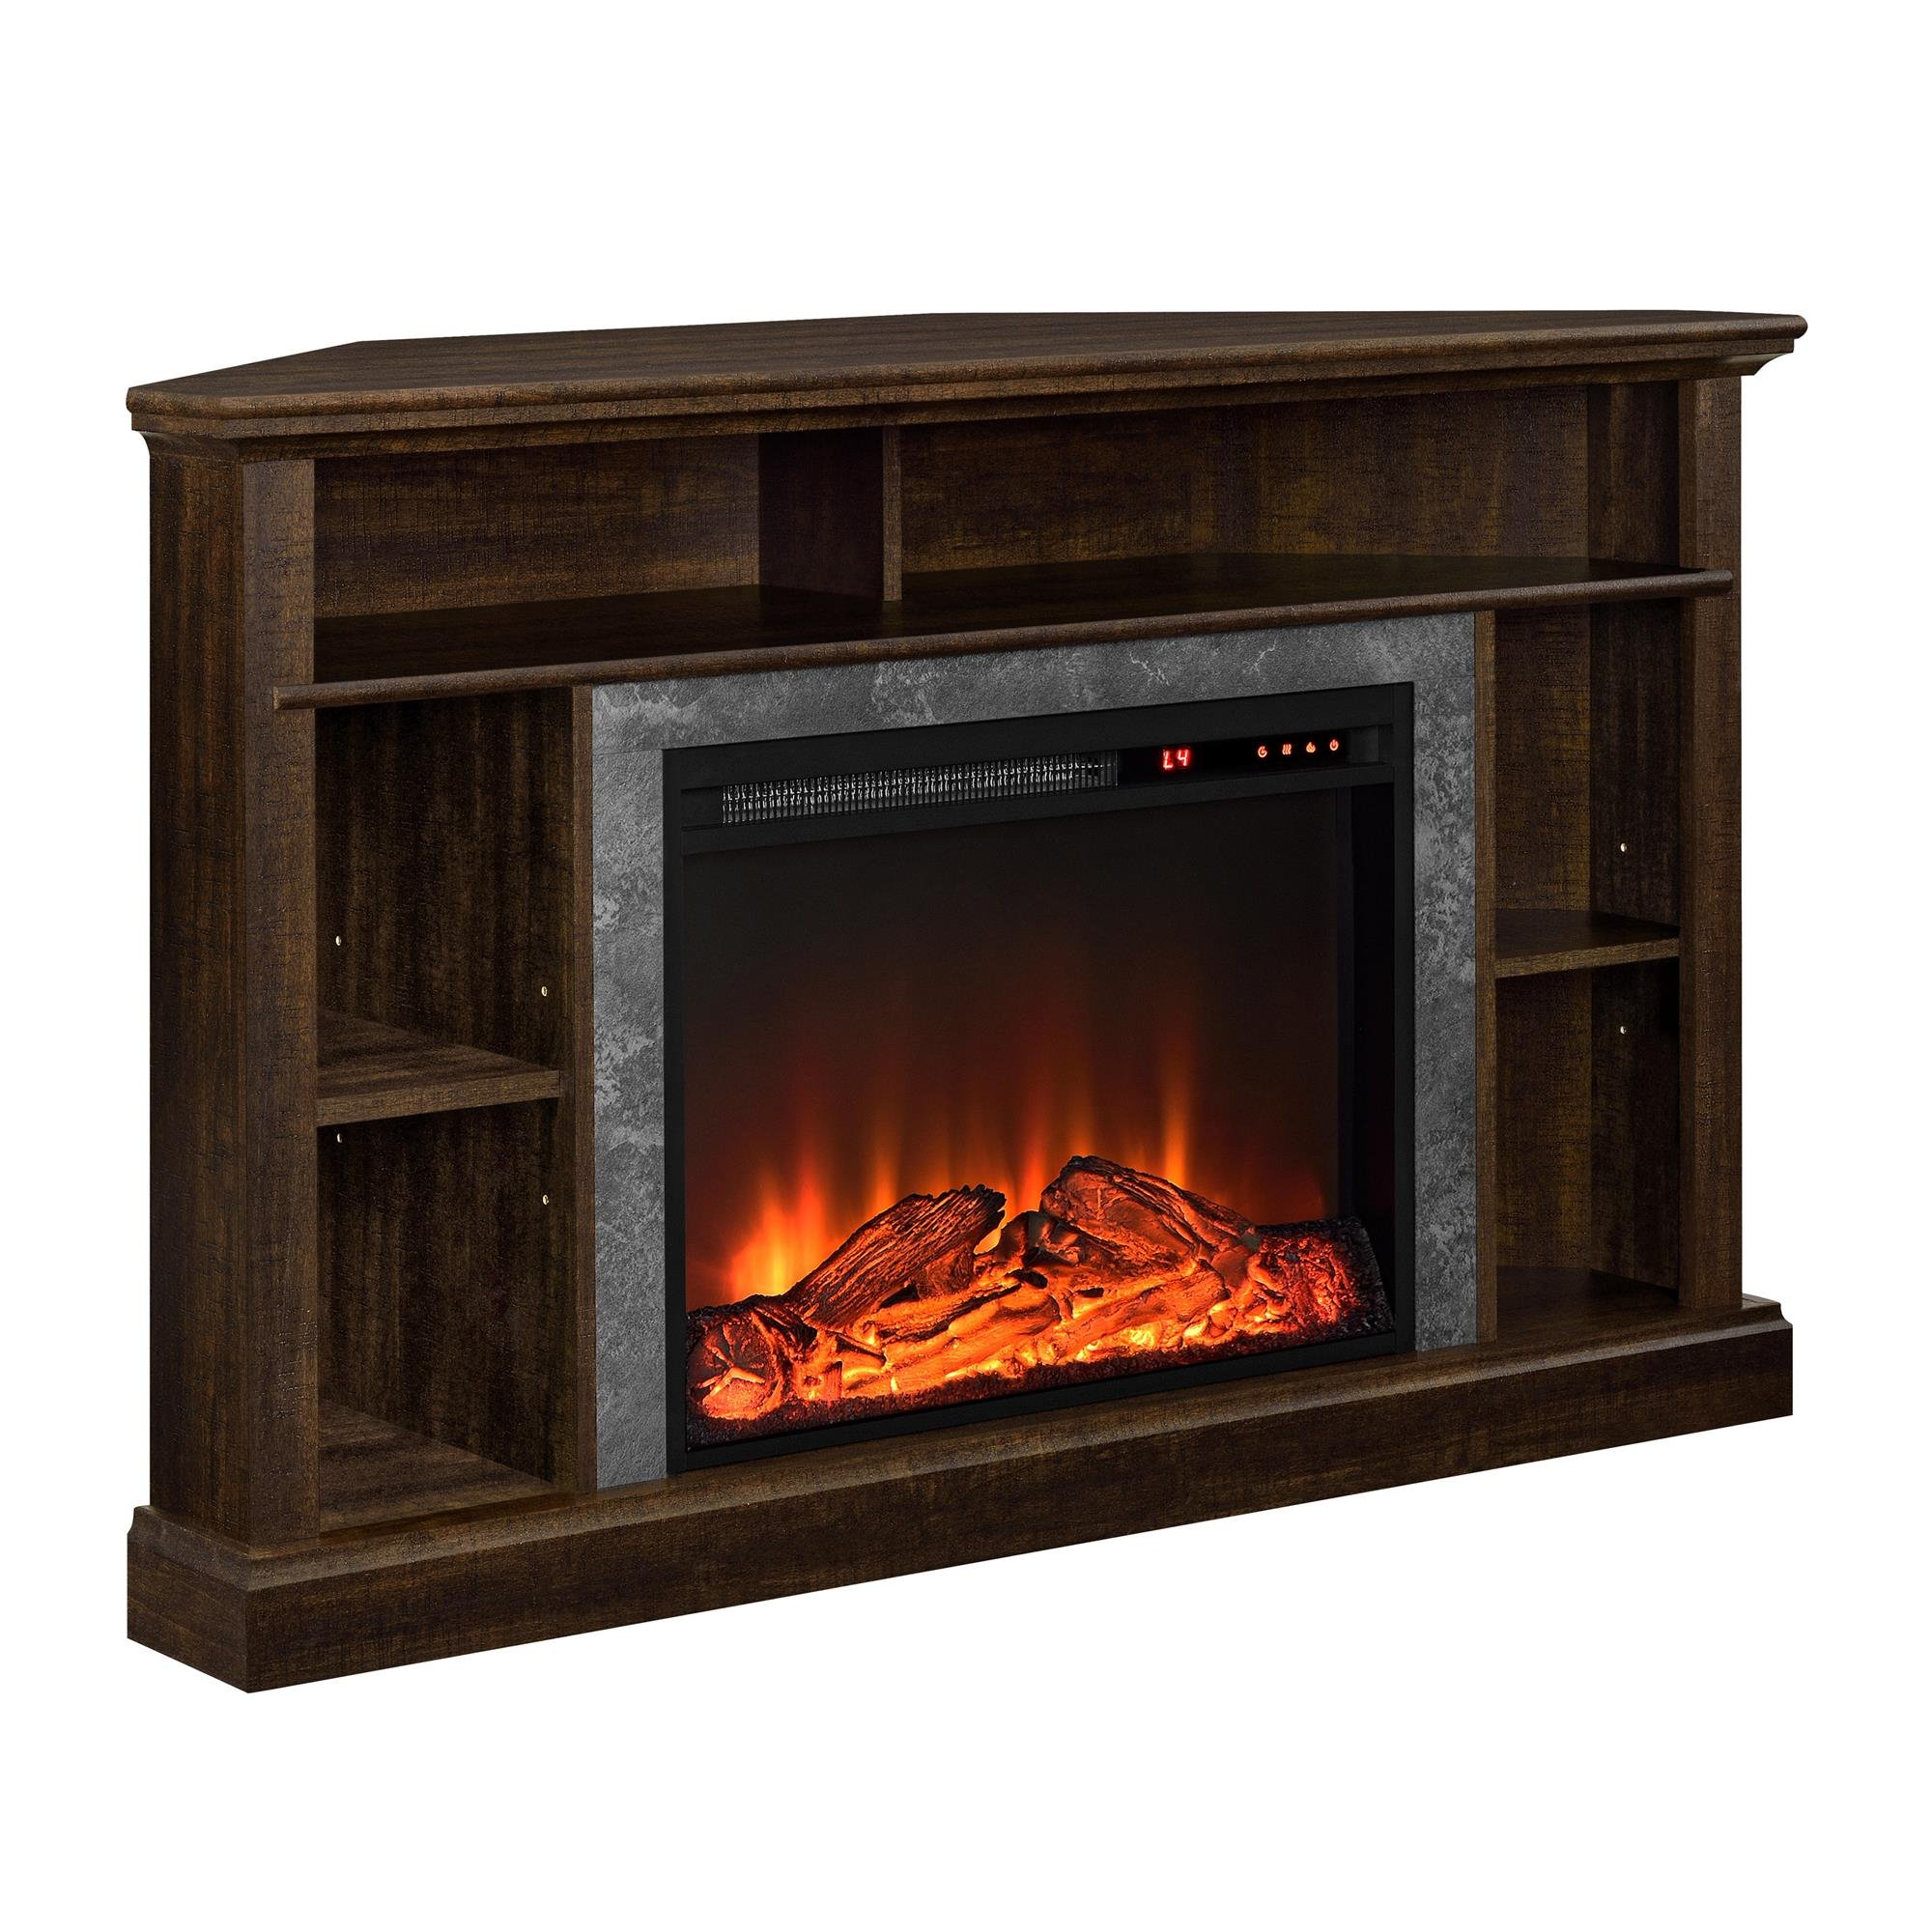 Ameriwood Home Overland Electric Corner Fireplace for TVs up to 50'' Wide, Espresso by Ameriwood Home